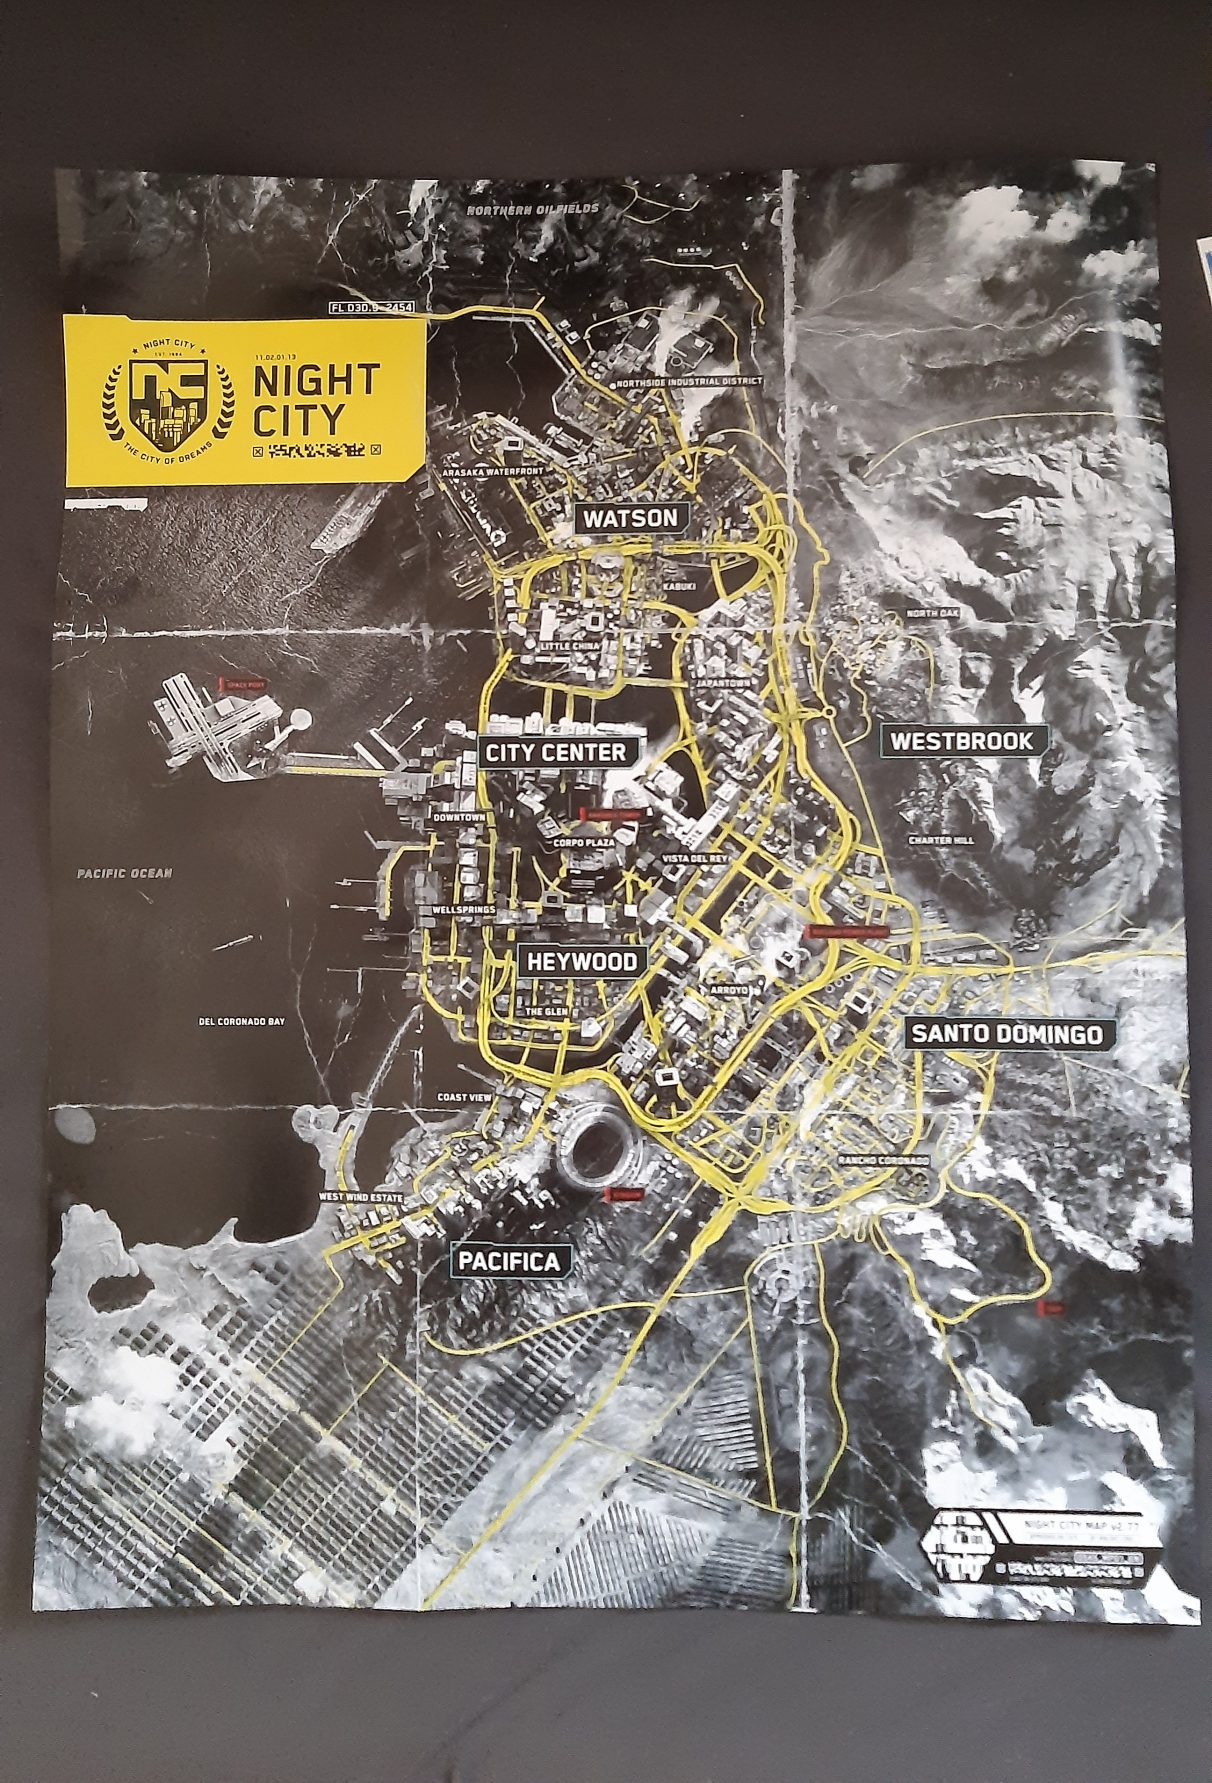 Here is a leaked map of Cyberpunk 2077's Night City. Each of the major city districts are highlighted, alongside numerous smaller points of interest.